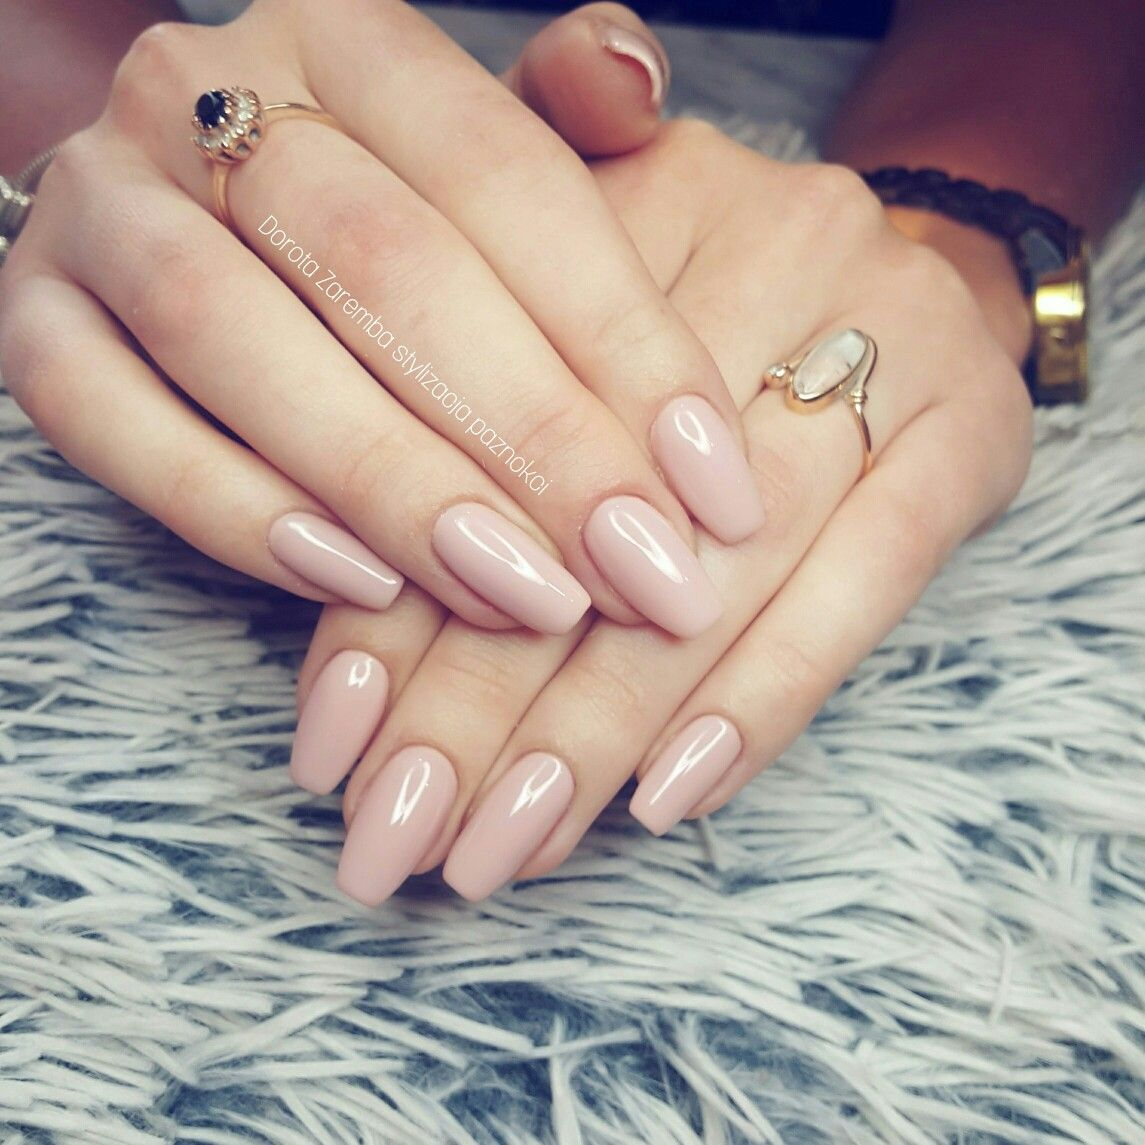 Natural nails, nude nails, design nails, glamour nails, style nails ...